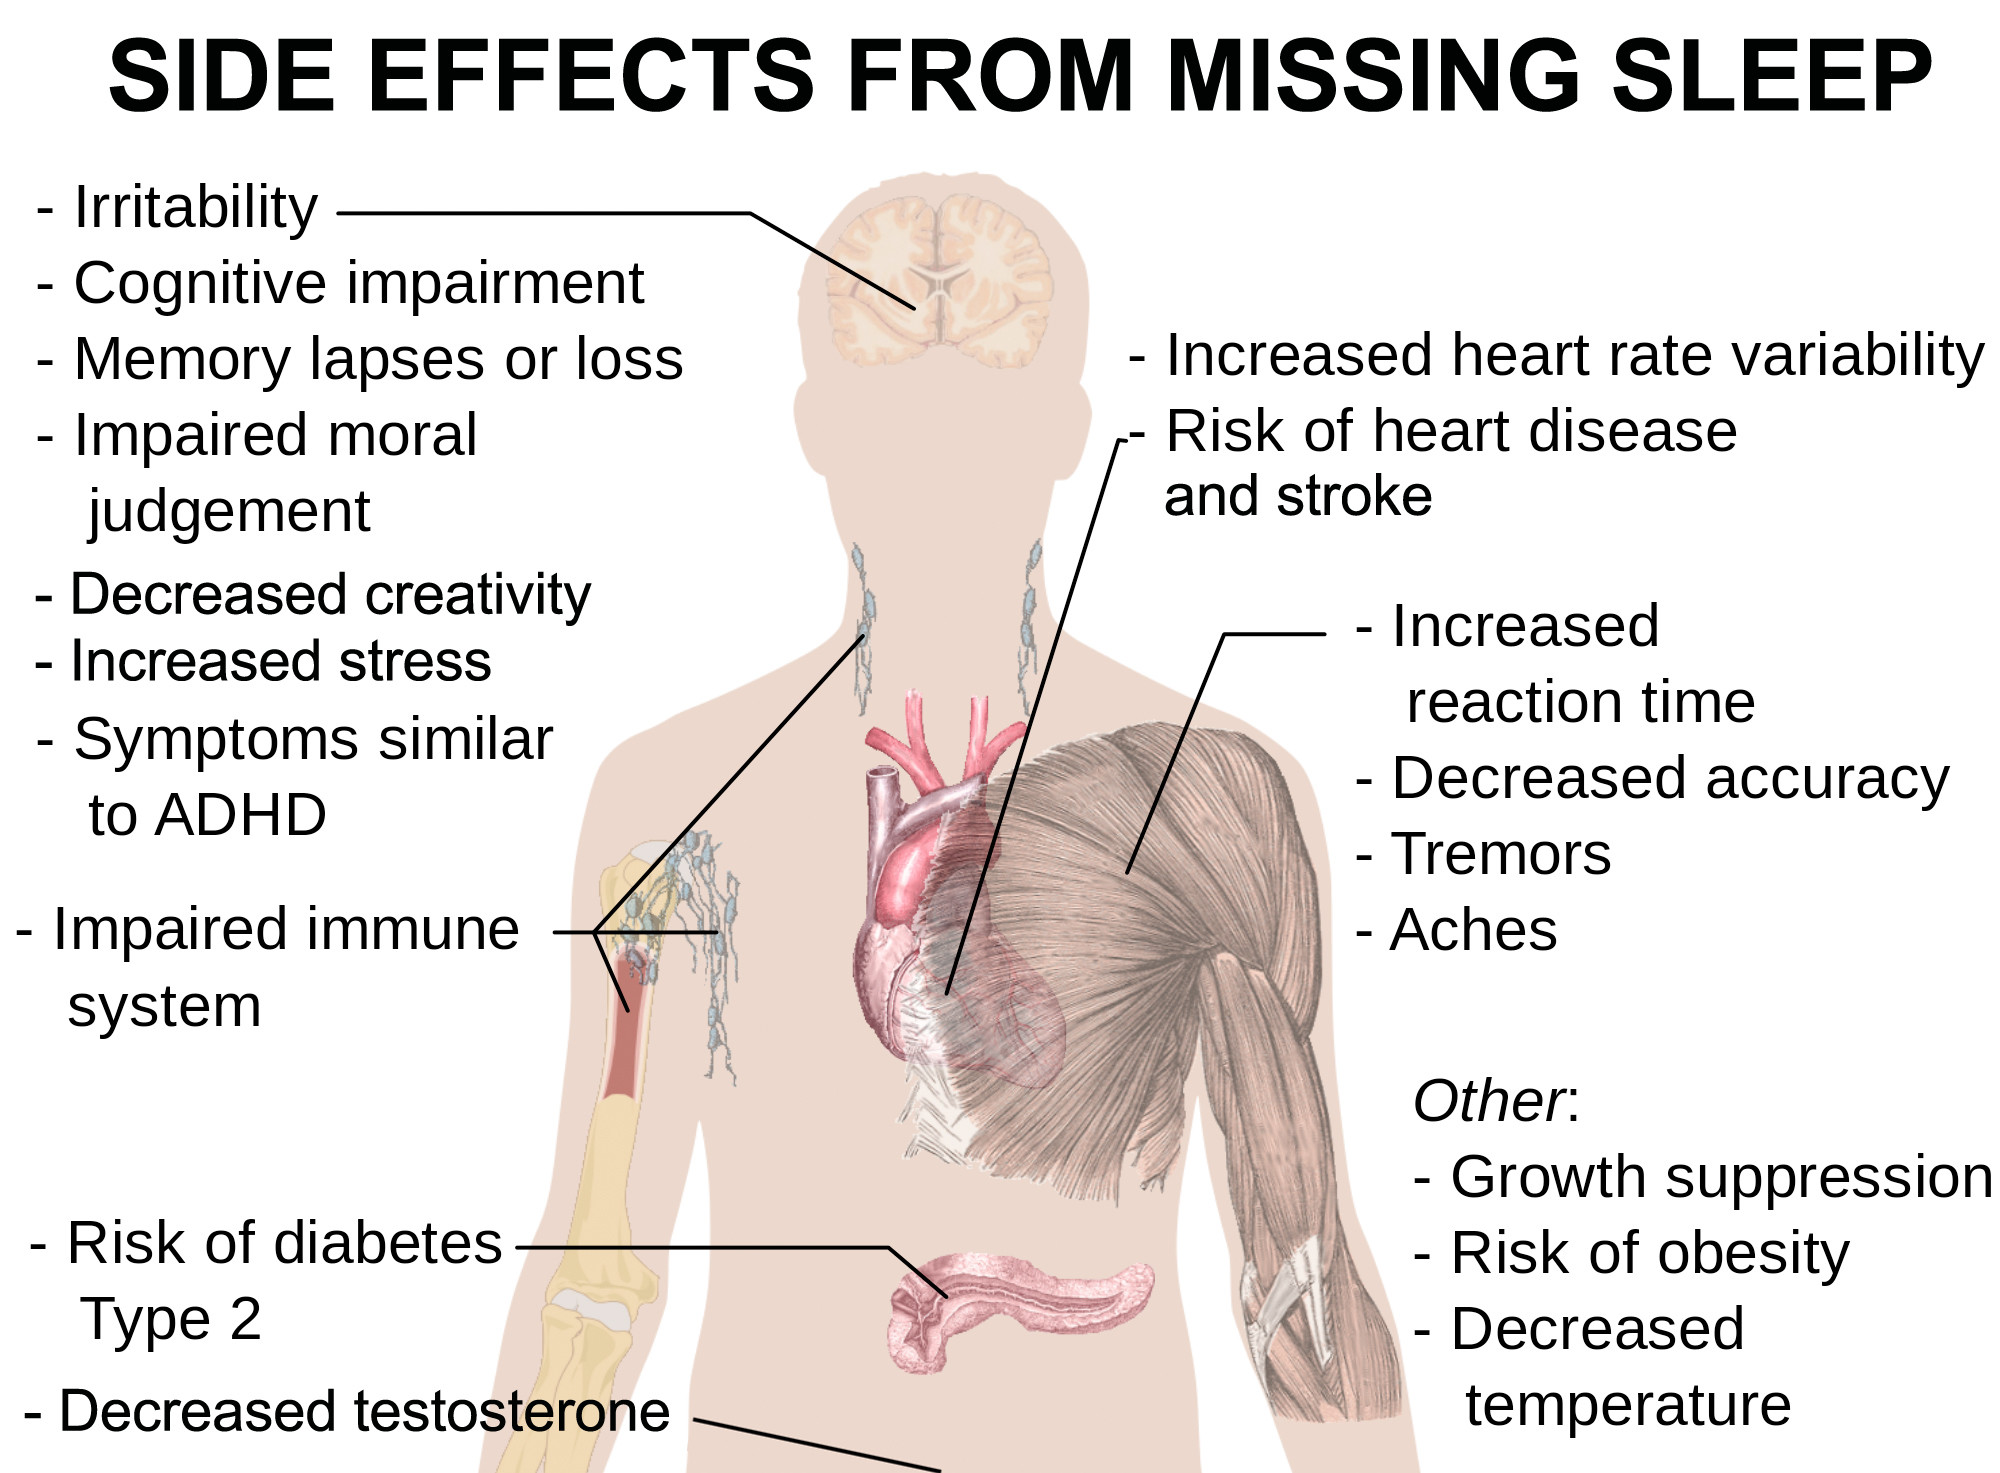 Symptoms That Mean You May Have Sleep Apnea and Should Get Screened